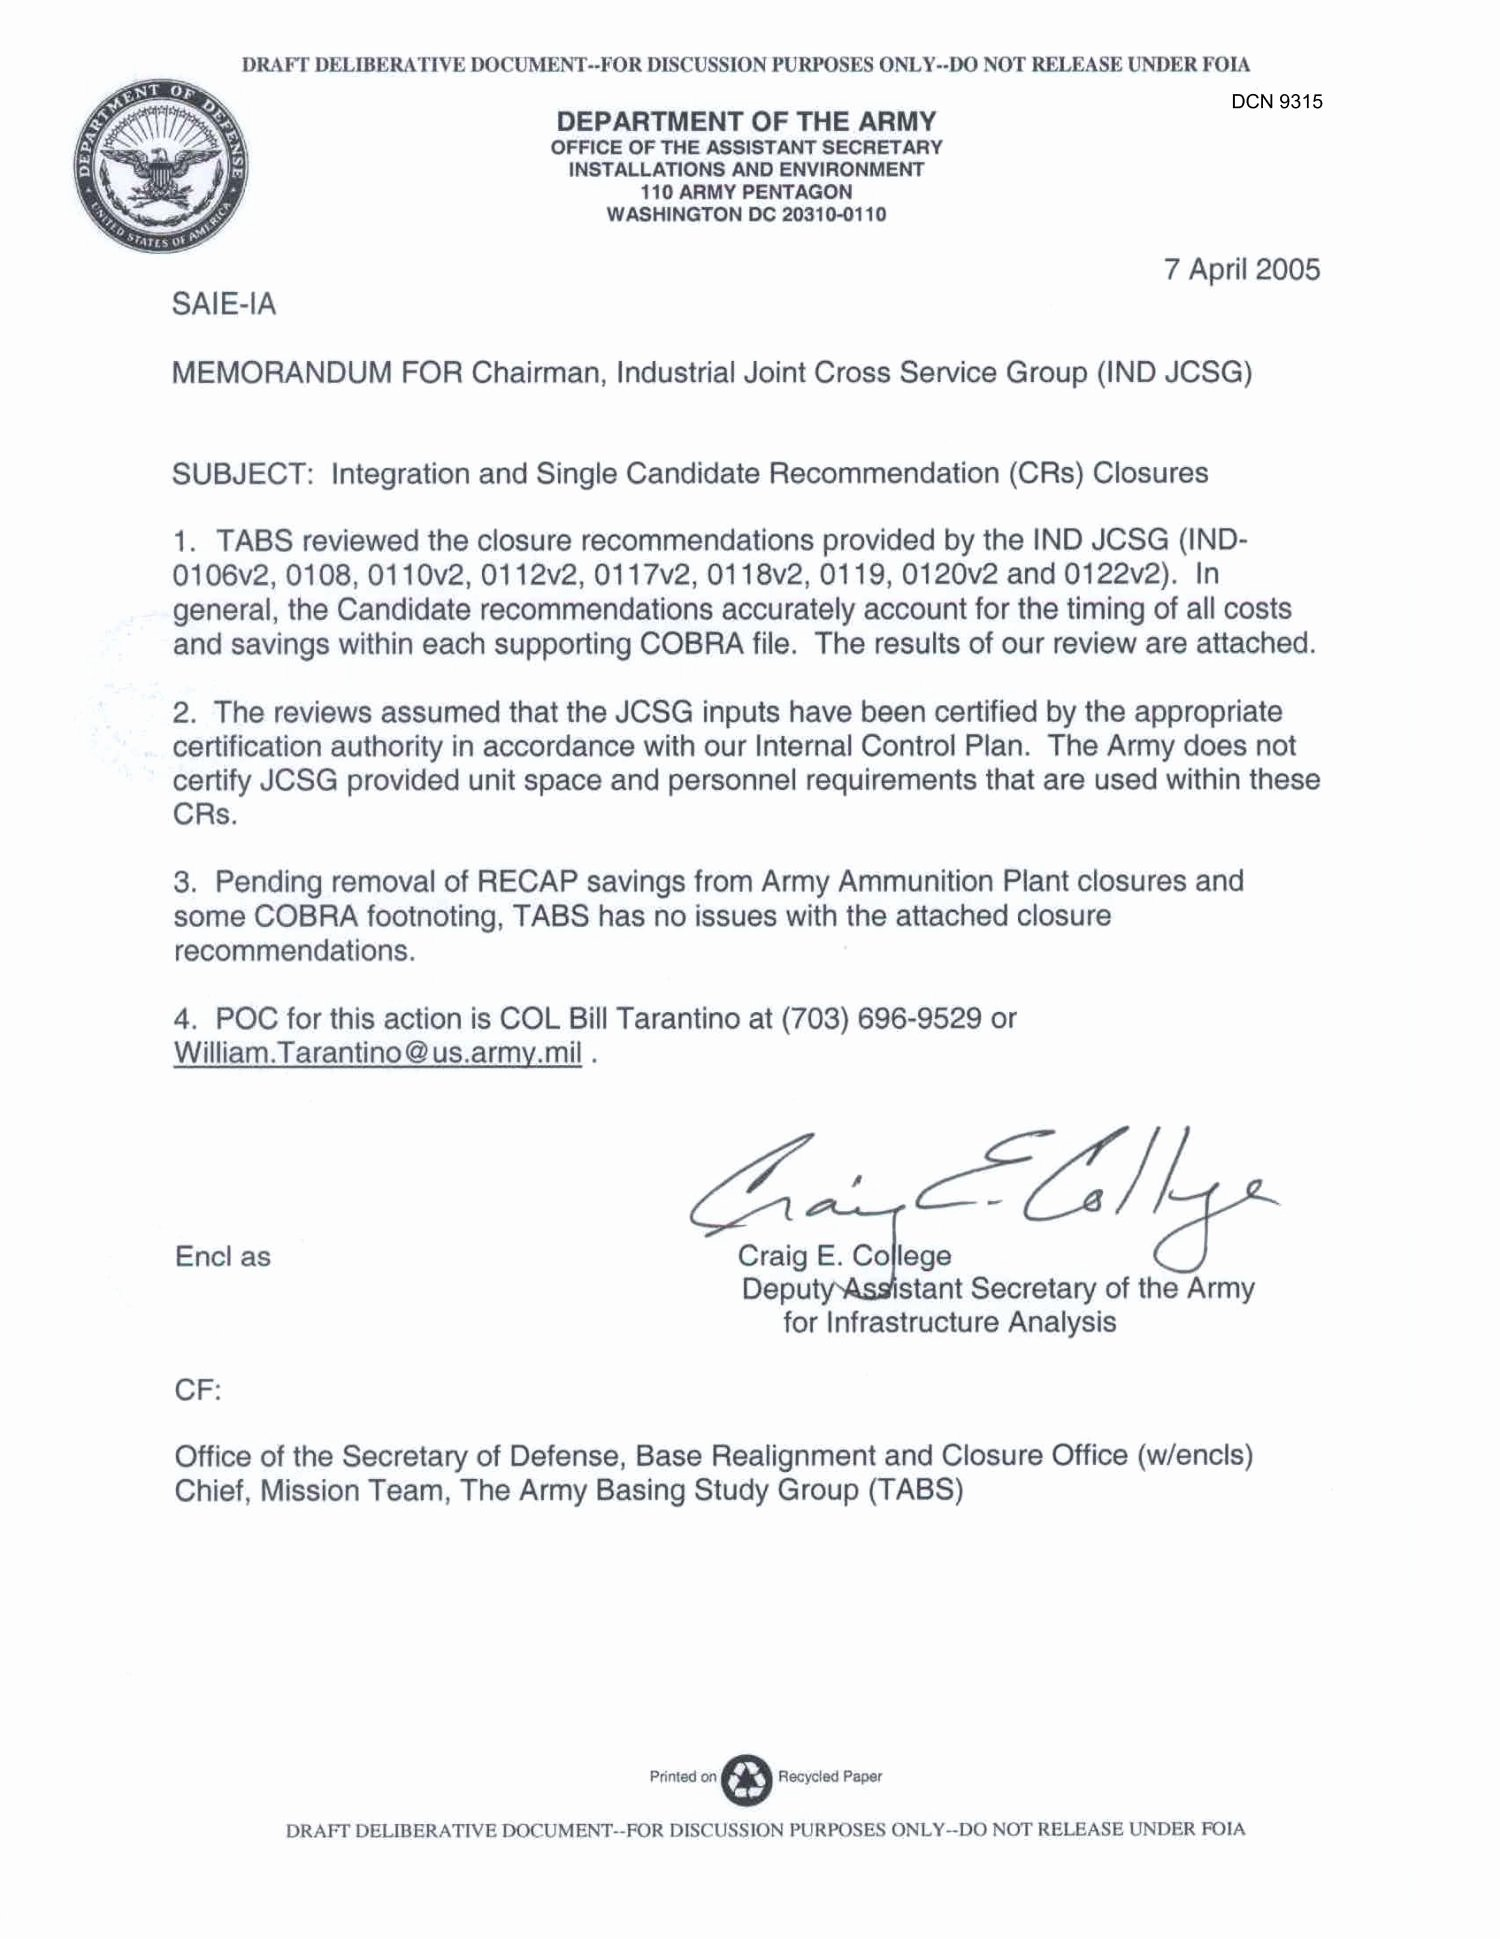 Military Letter Of Recommendation Awesome Department Of the Army Memo Dated 7 April 2005 for